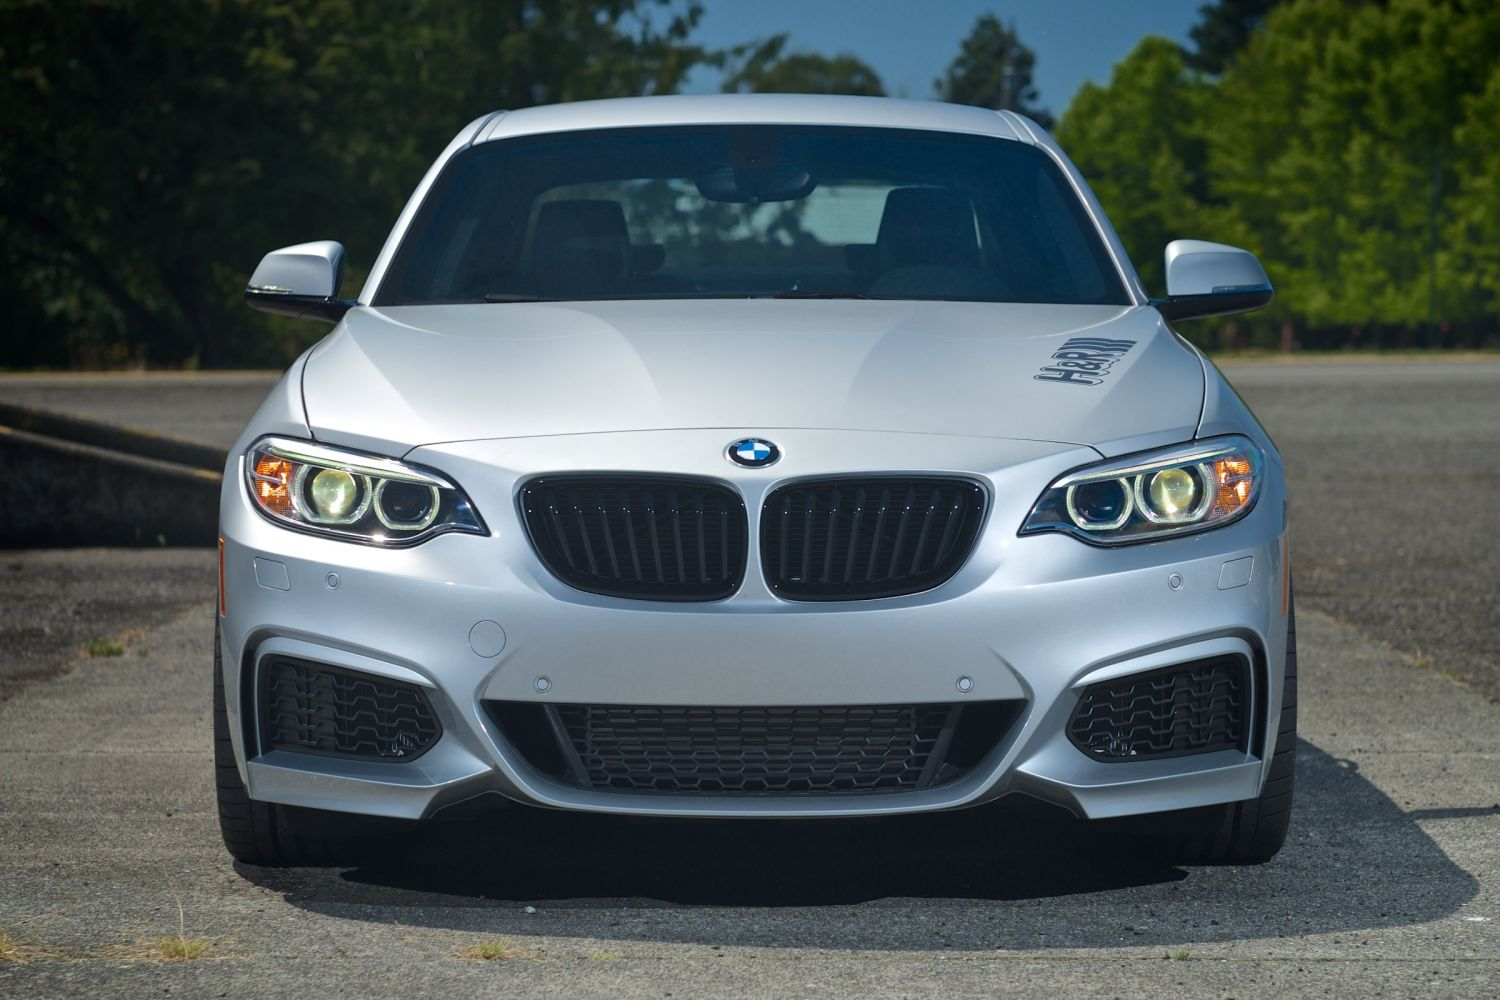 H Amp R 2014 Bmw 228i M Sport Coupe H Amp R Special Springs Lp